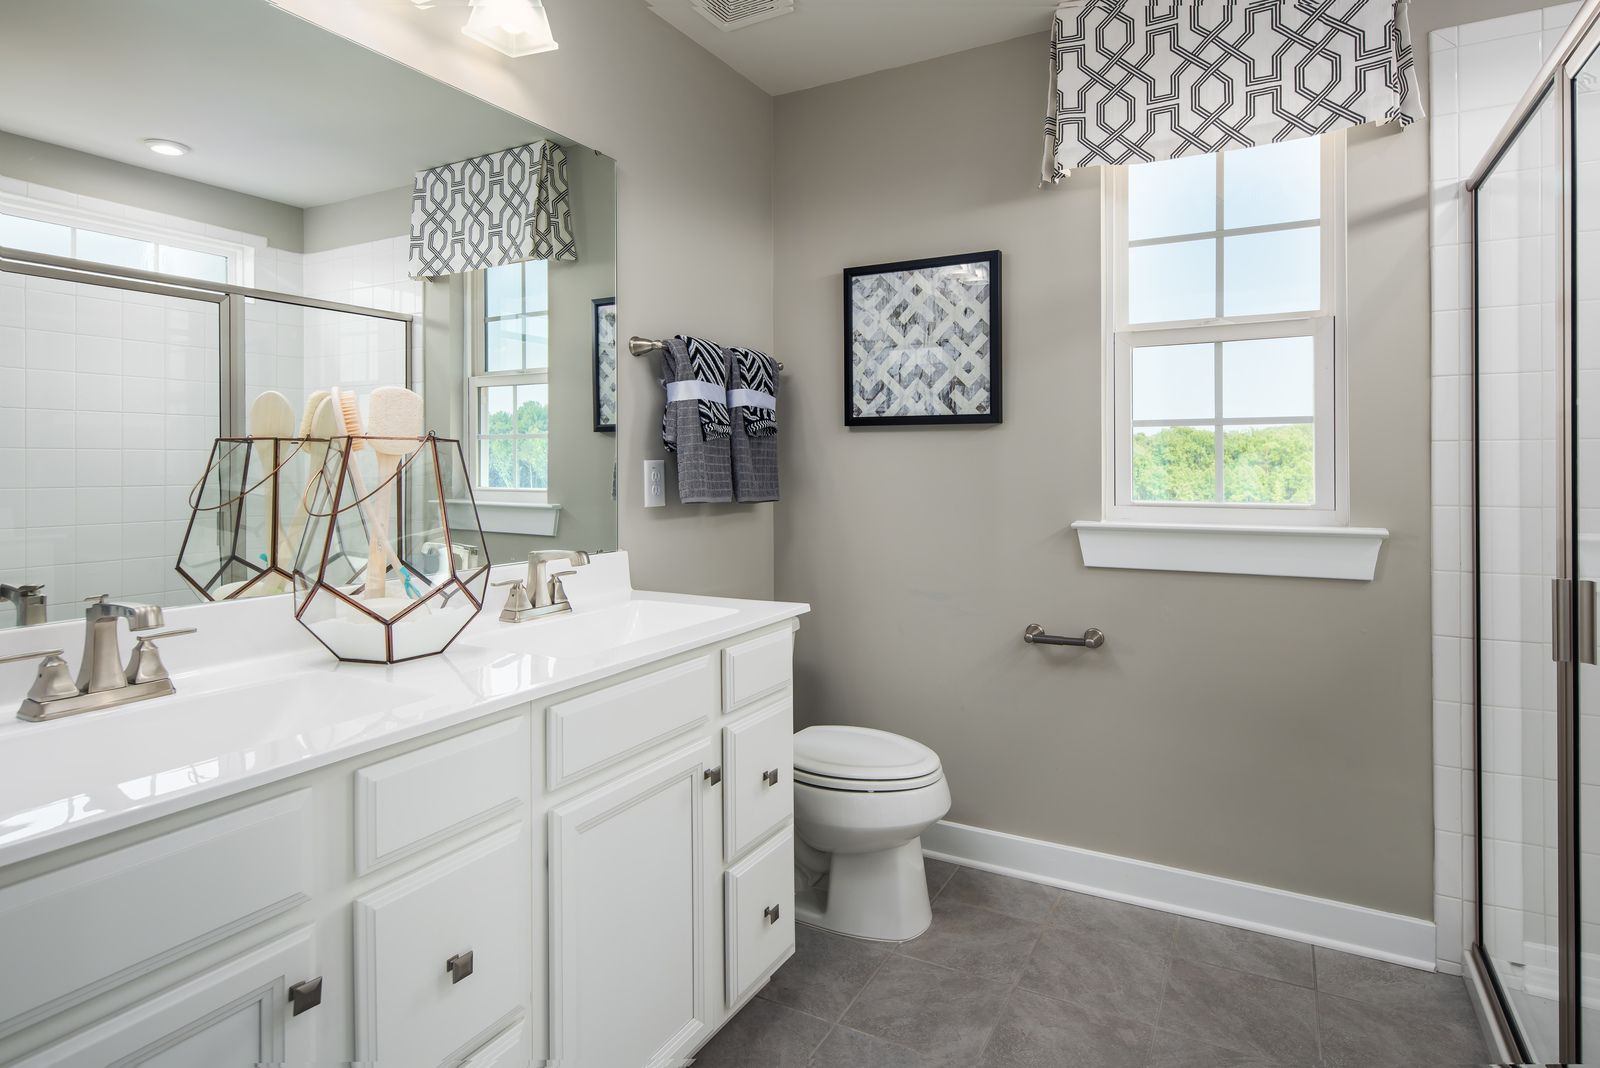 Bathroom featured in the Mendelssohn By Ryan Homes in Charlotte, NC